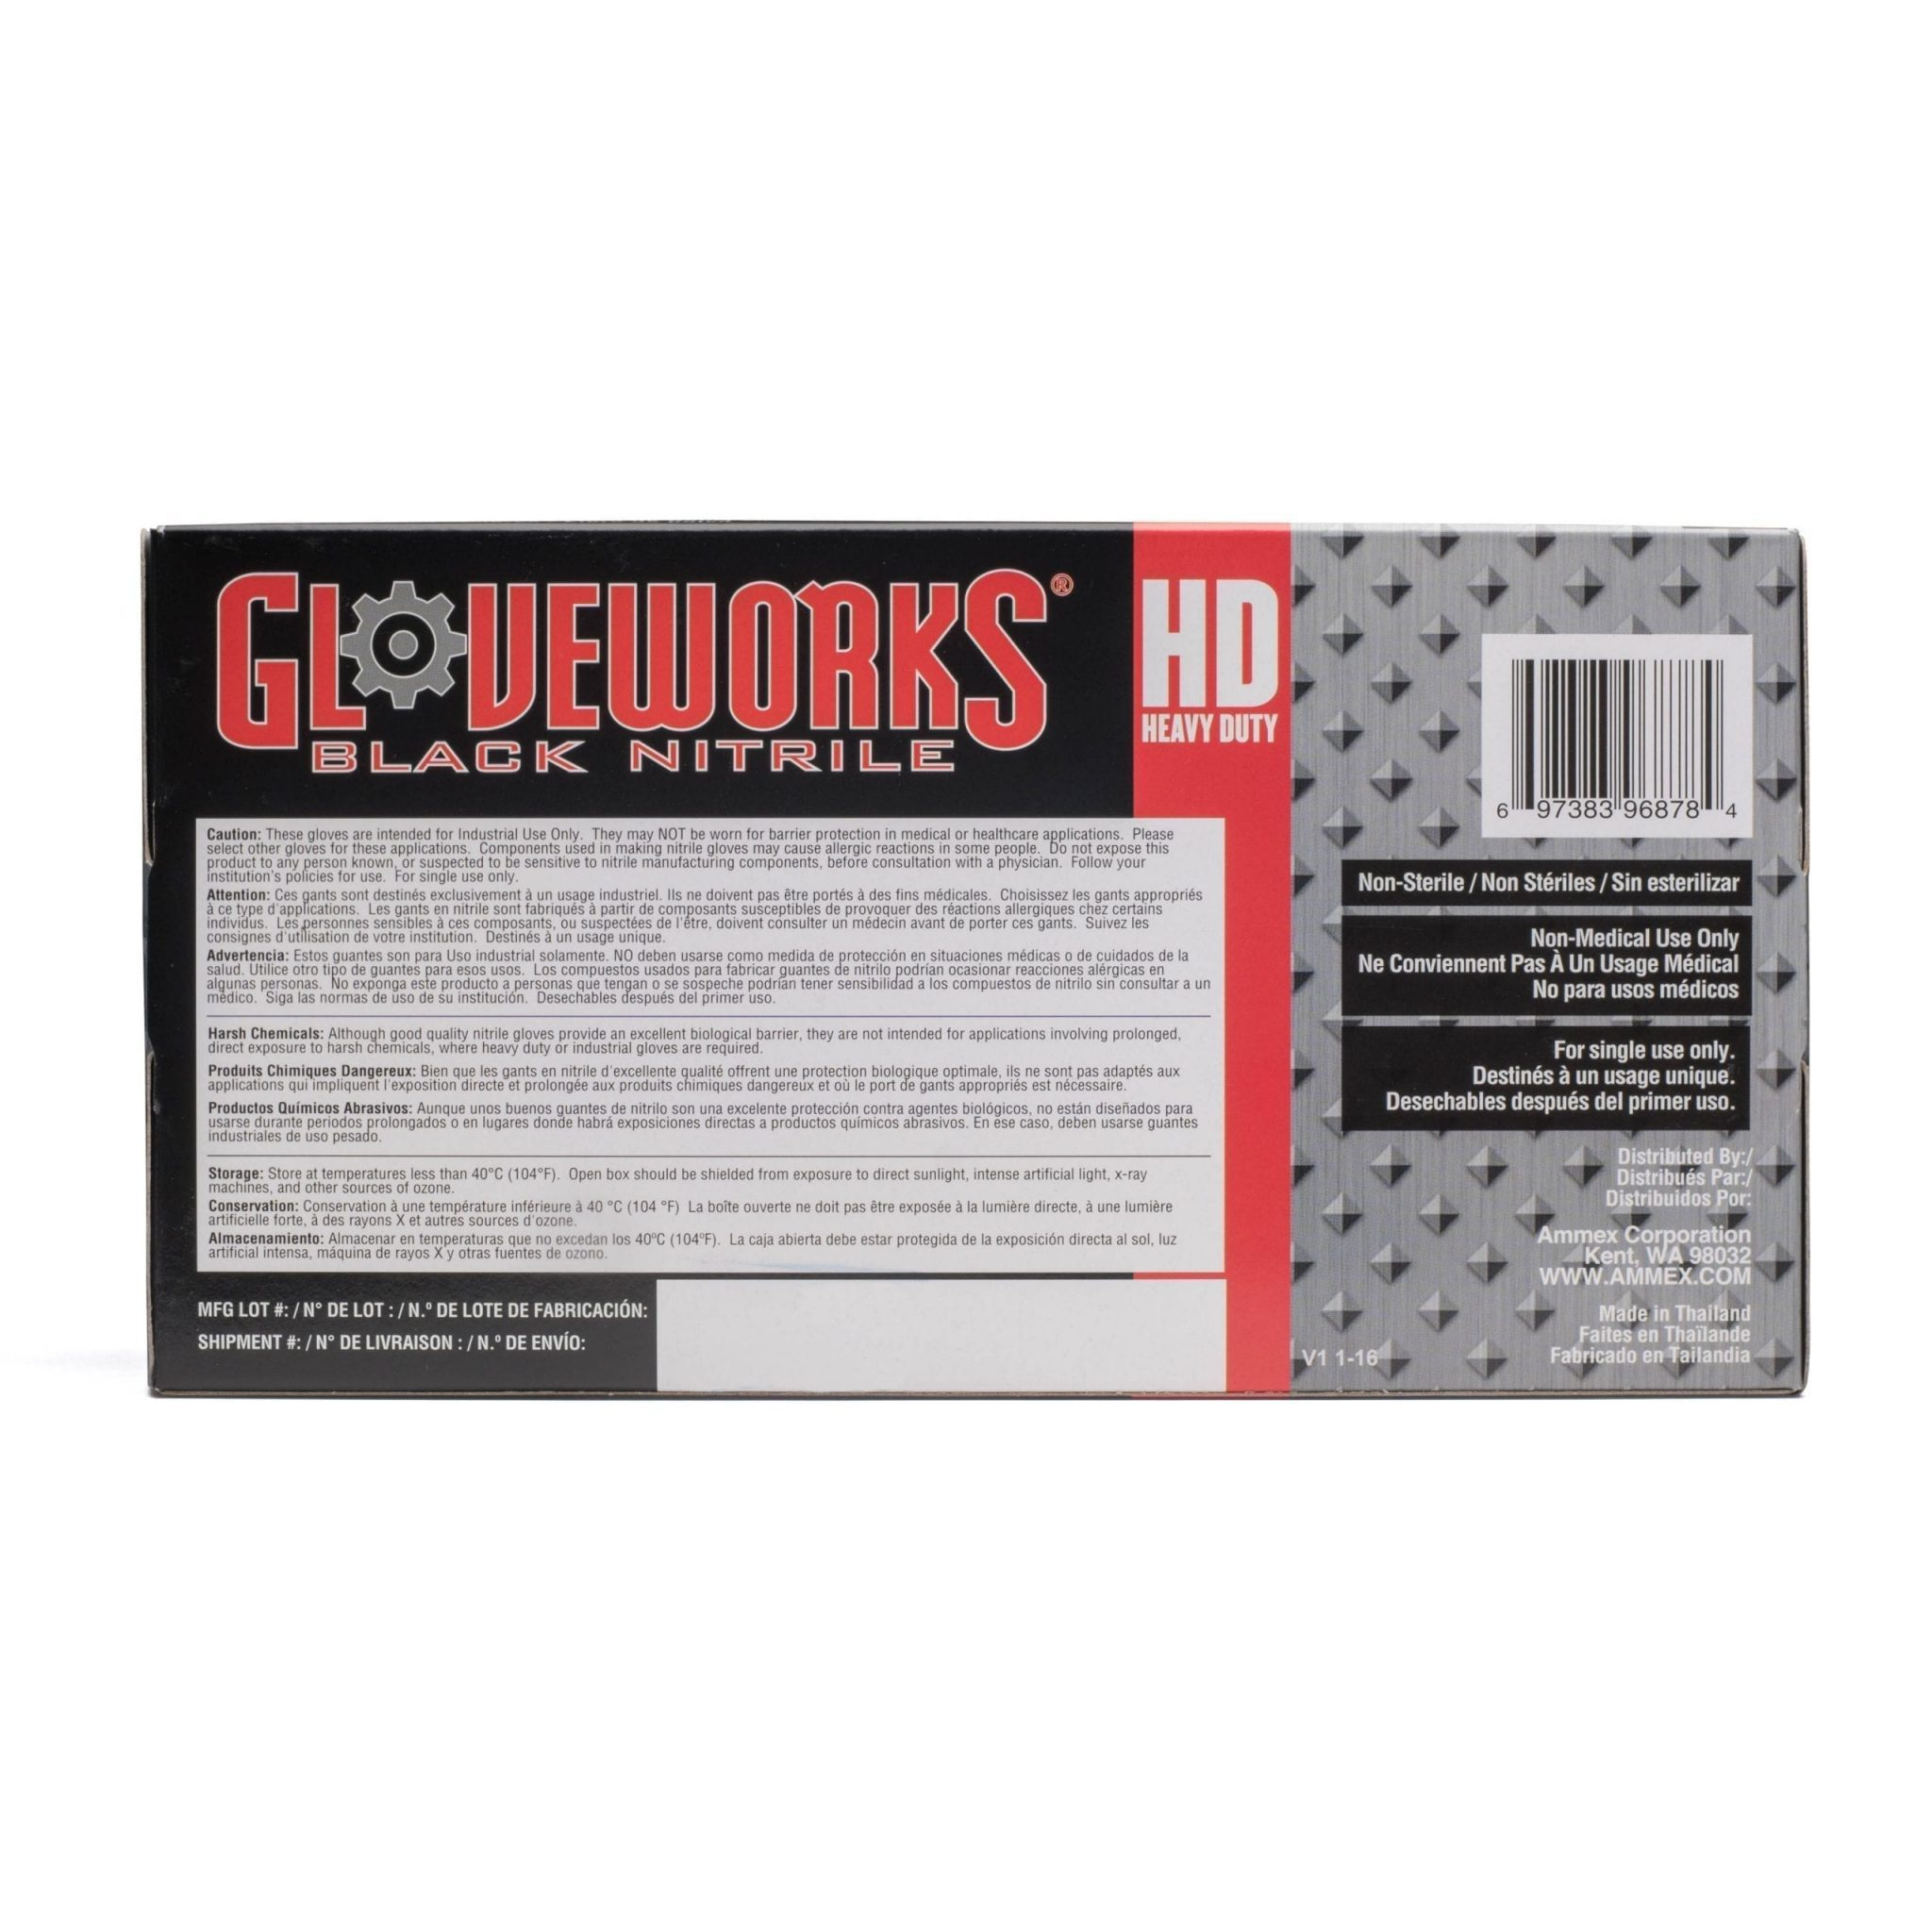 Gloveworks HD Black Nitrile Industrial Latex Free Disposable Gloves